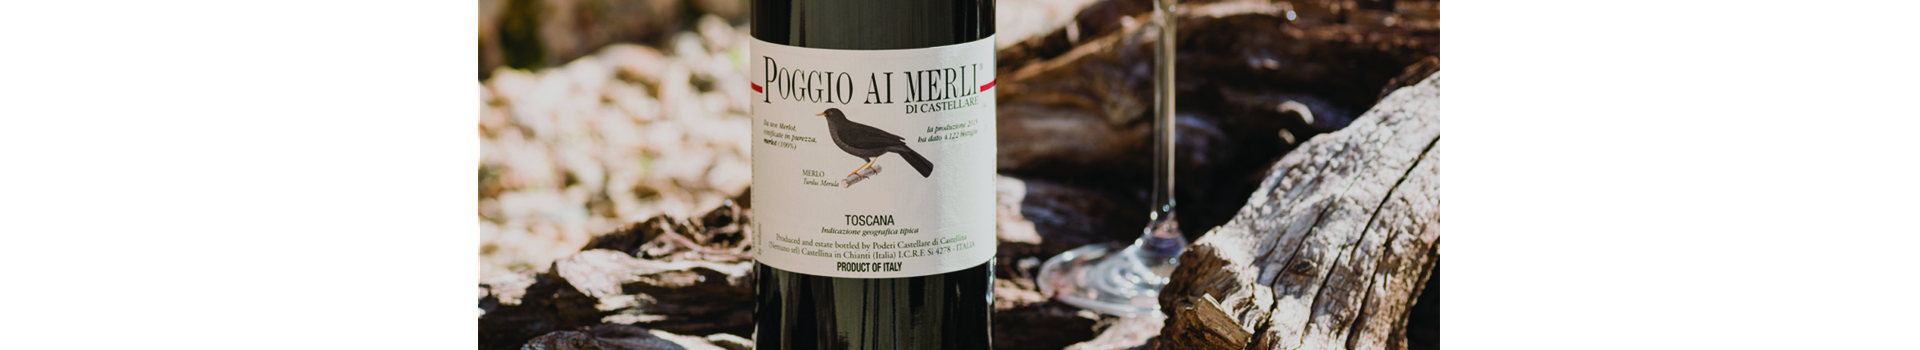 POGGIO AI MERLI 2016 AWARDED WITH 97+ BY WINE ADVOCATEAND ENTER IN THE GOTHA OF THE MOST GREAT MERLOT WINES IN THE WORLD